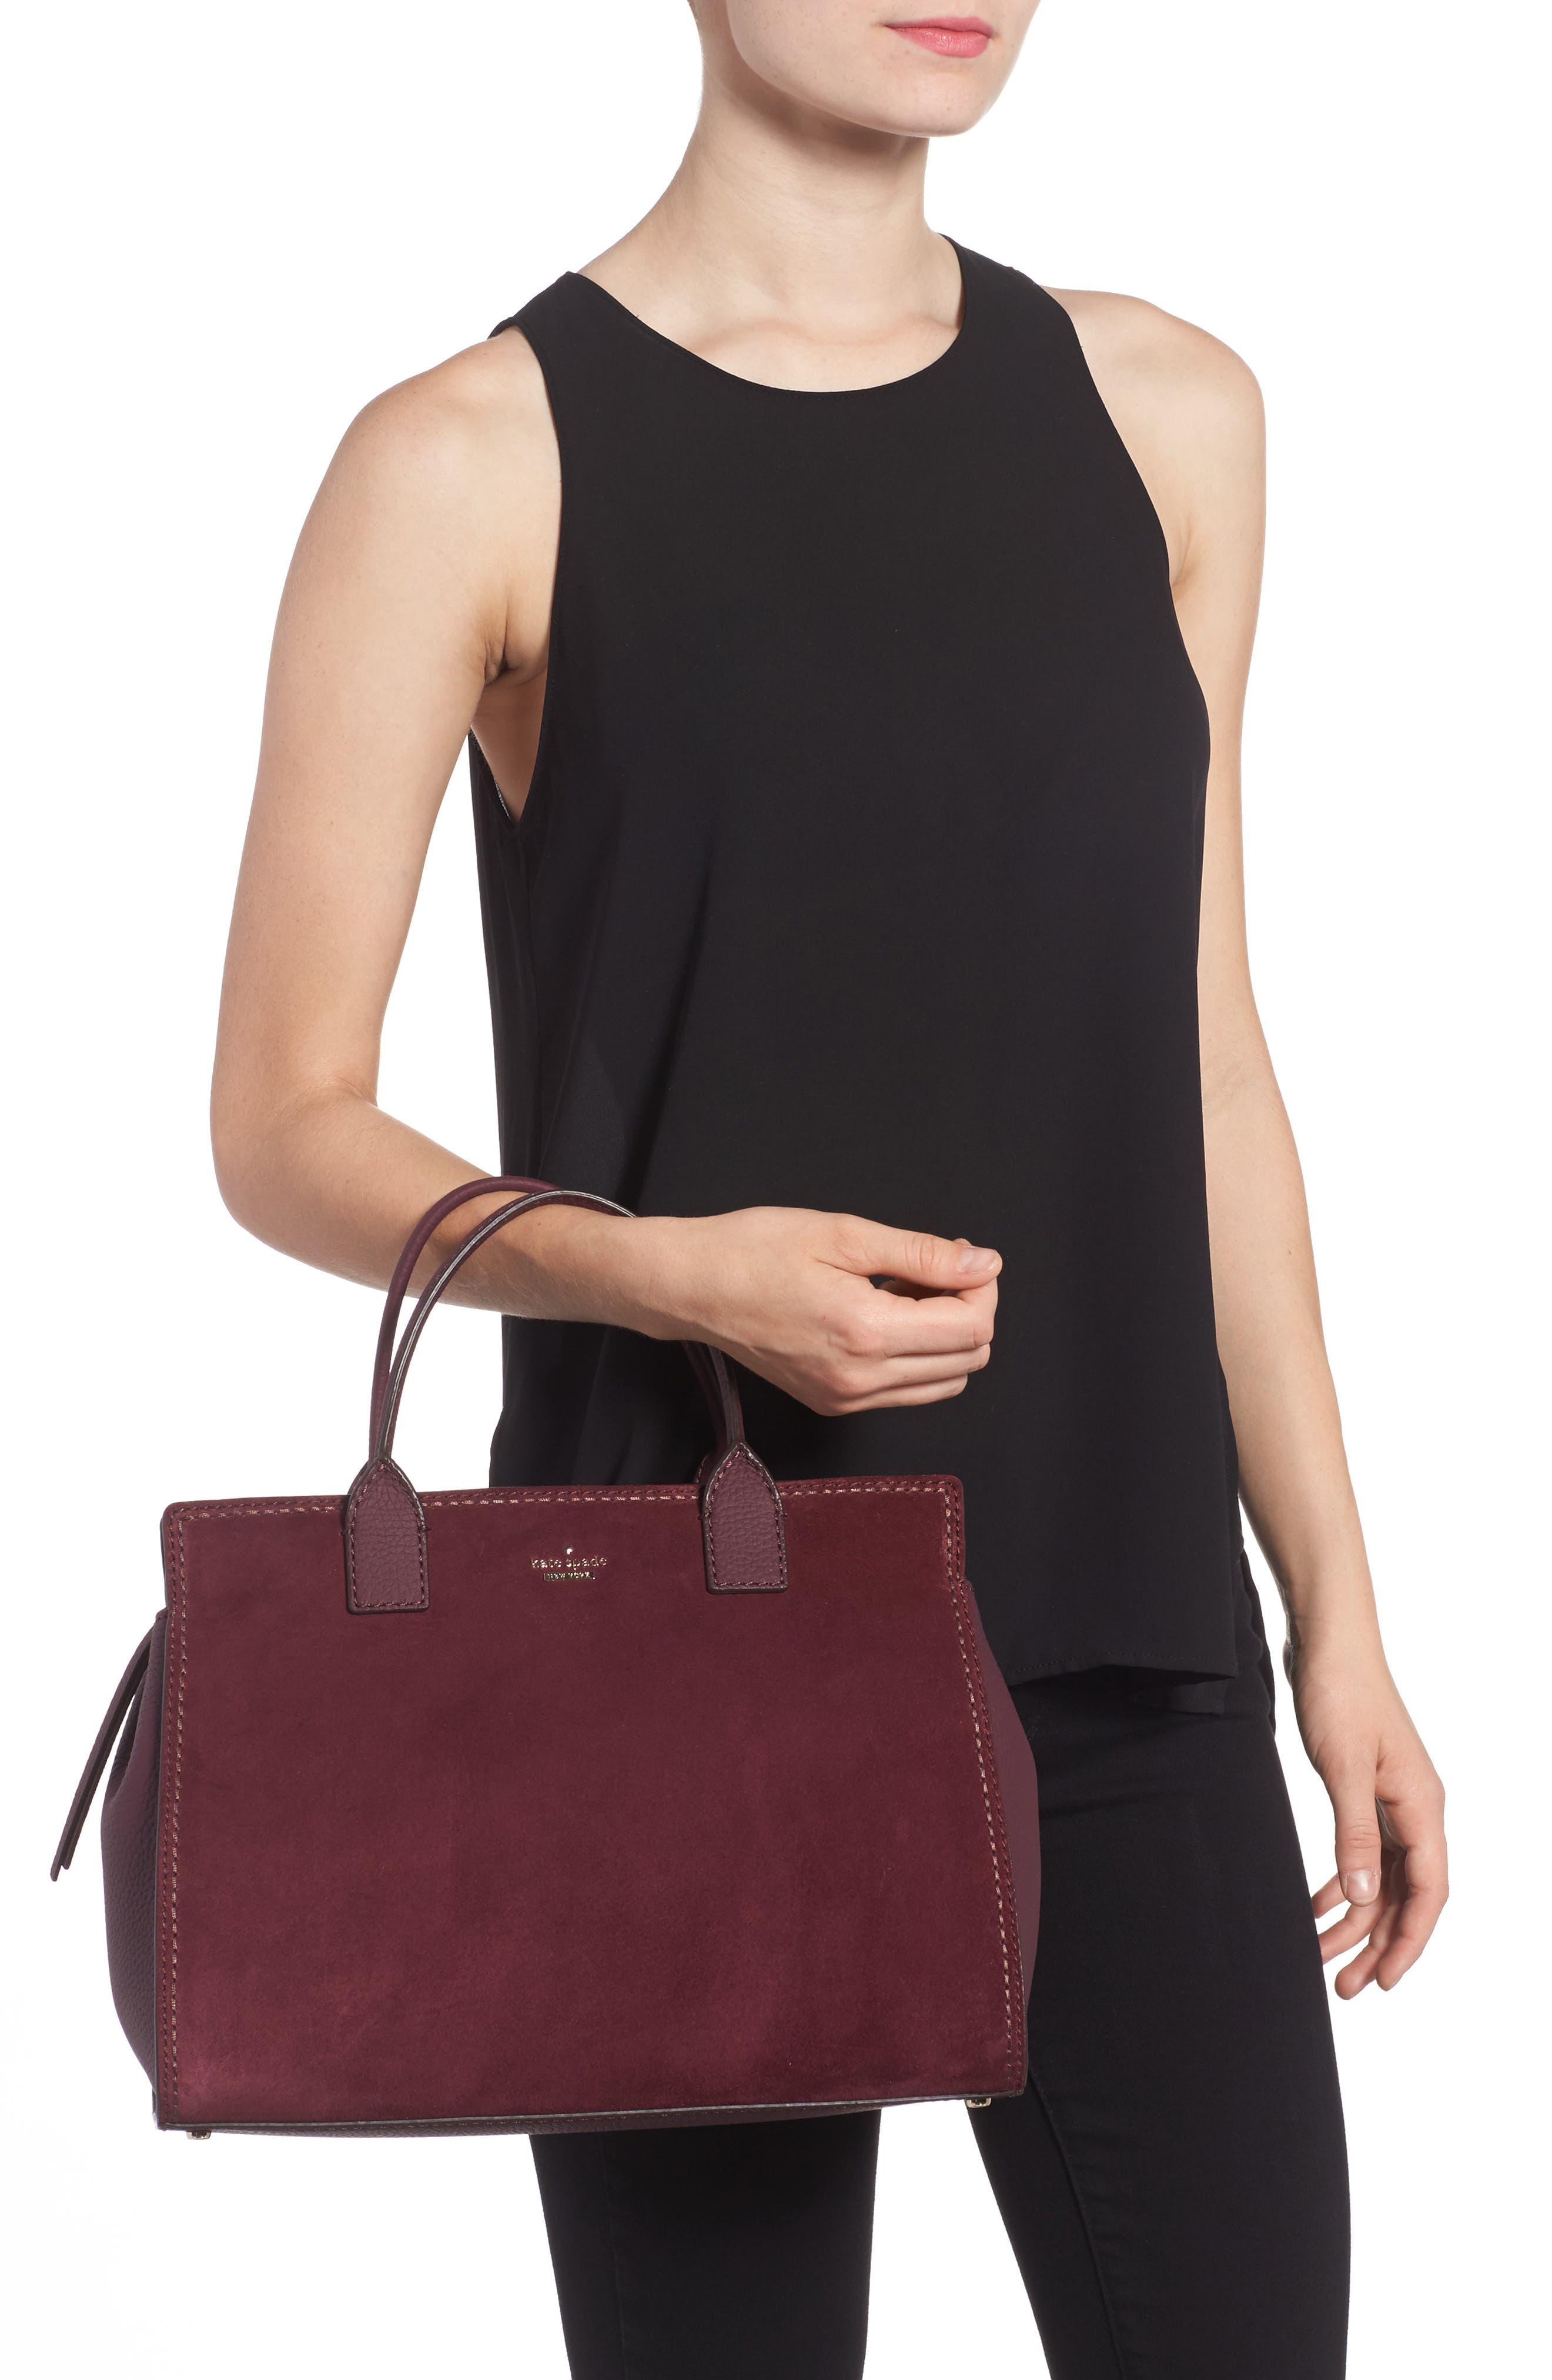 dunne lane lake suede satchel,                             Alternate thumbnail 2, color,                             Deep Wine